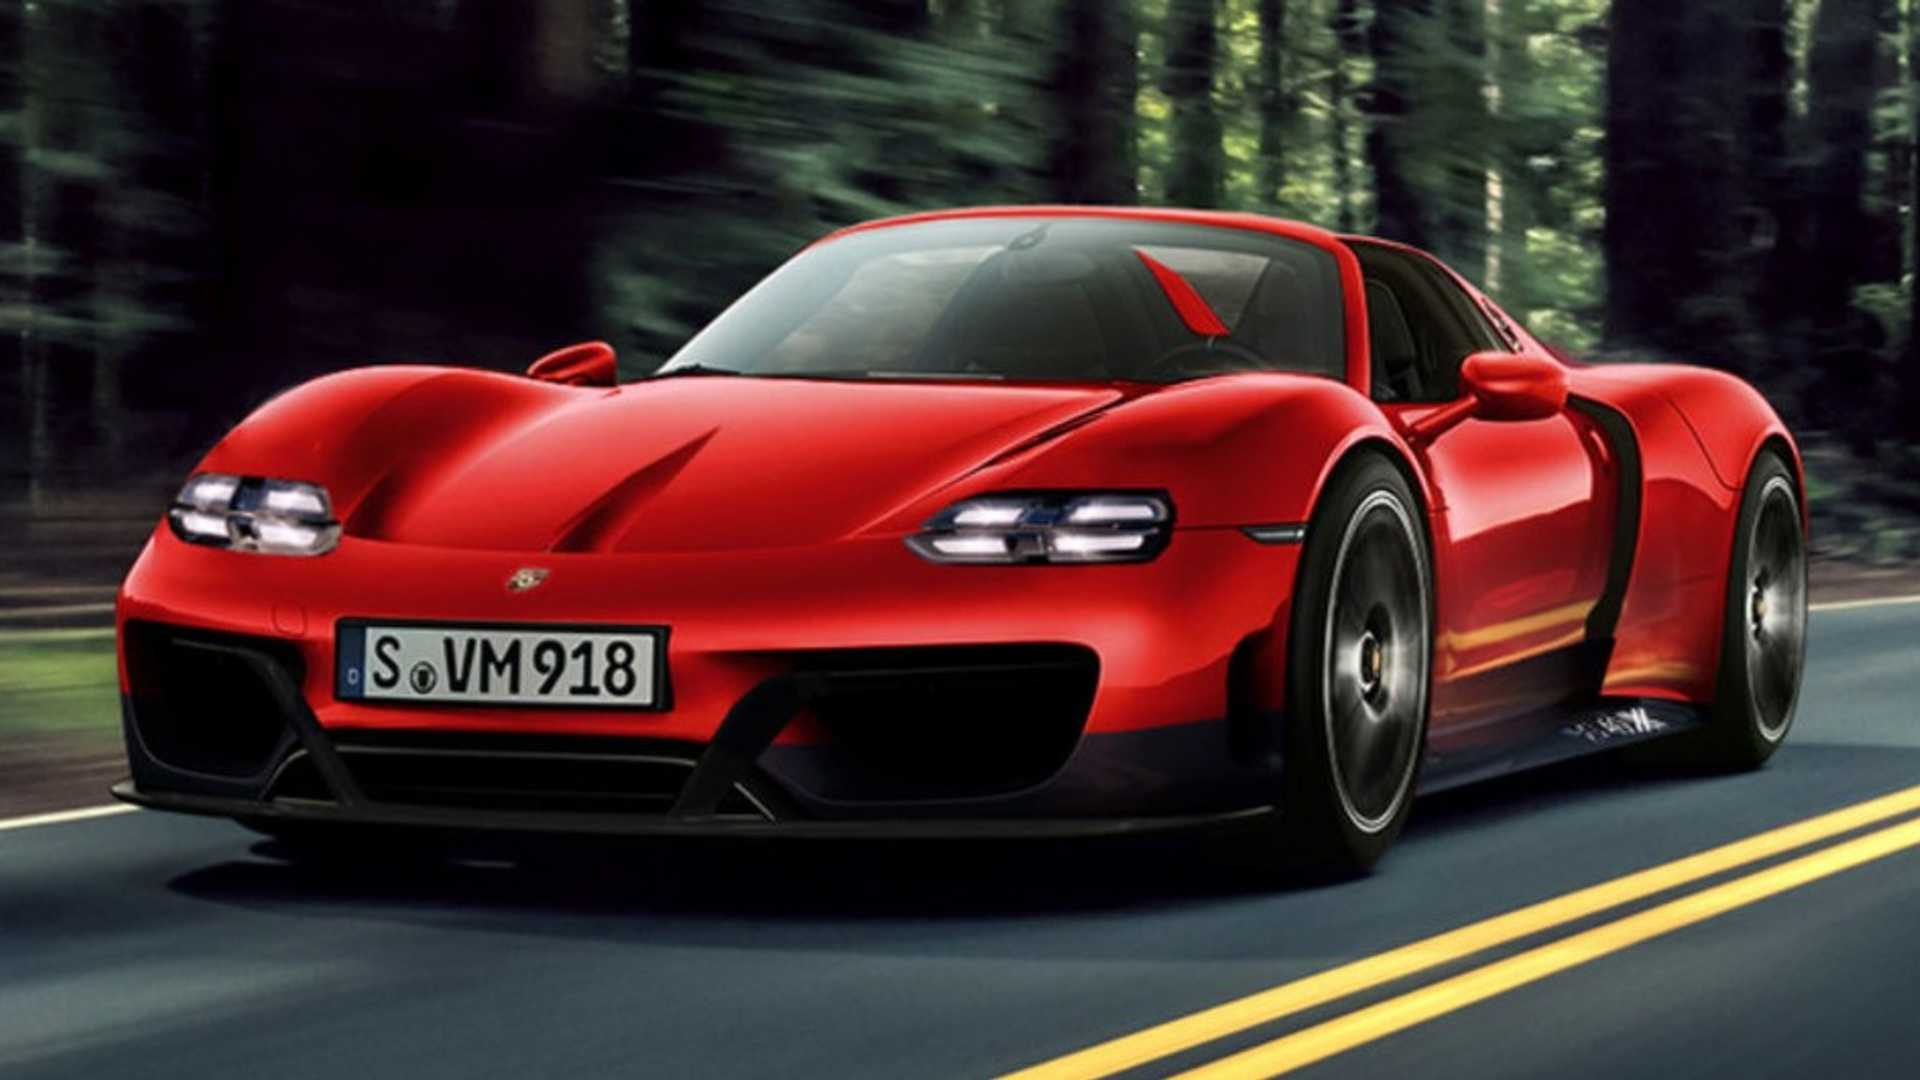 Porsche Electrified Hypercar Coming 2025 At The Earliest